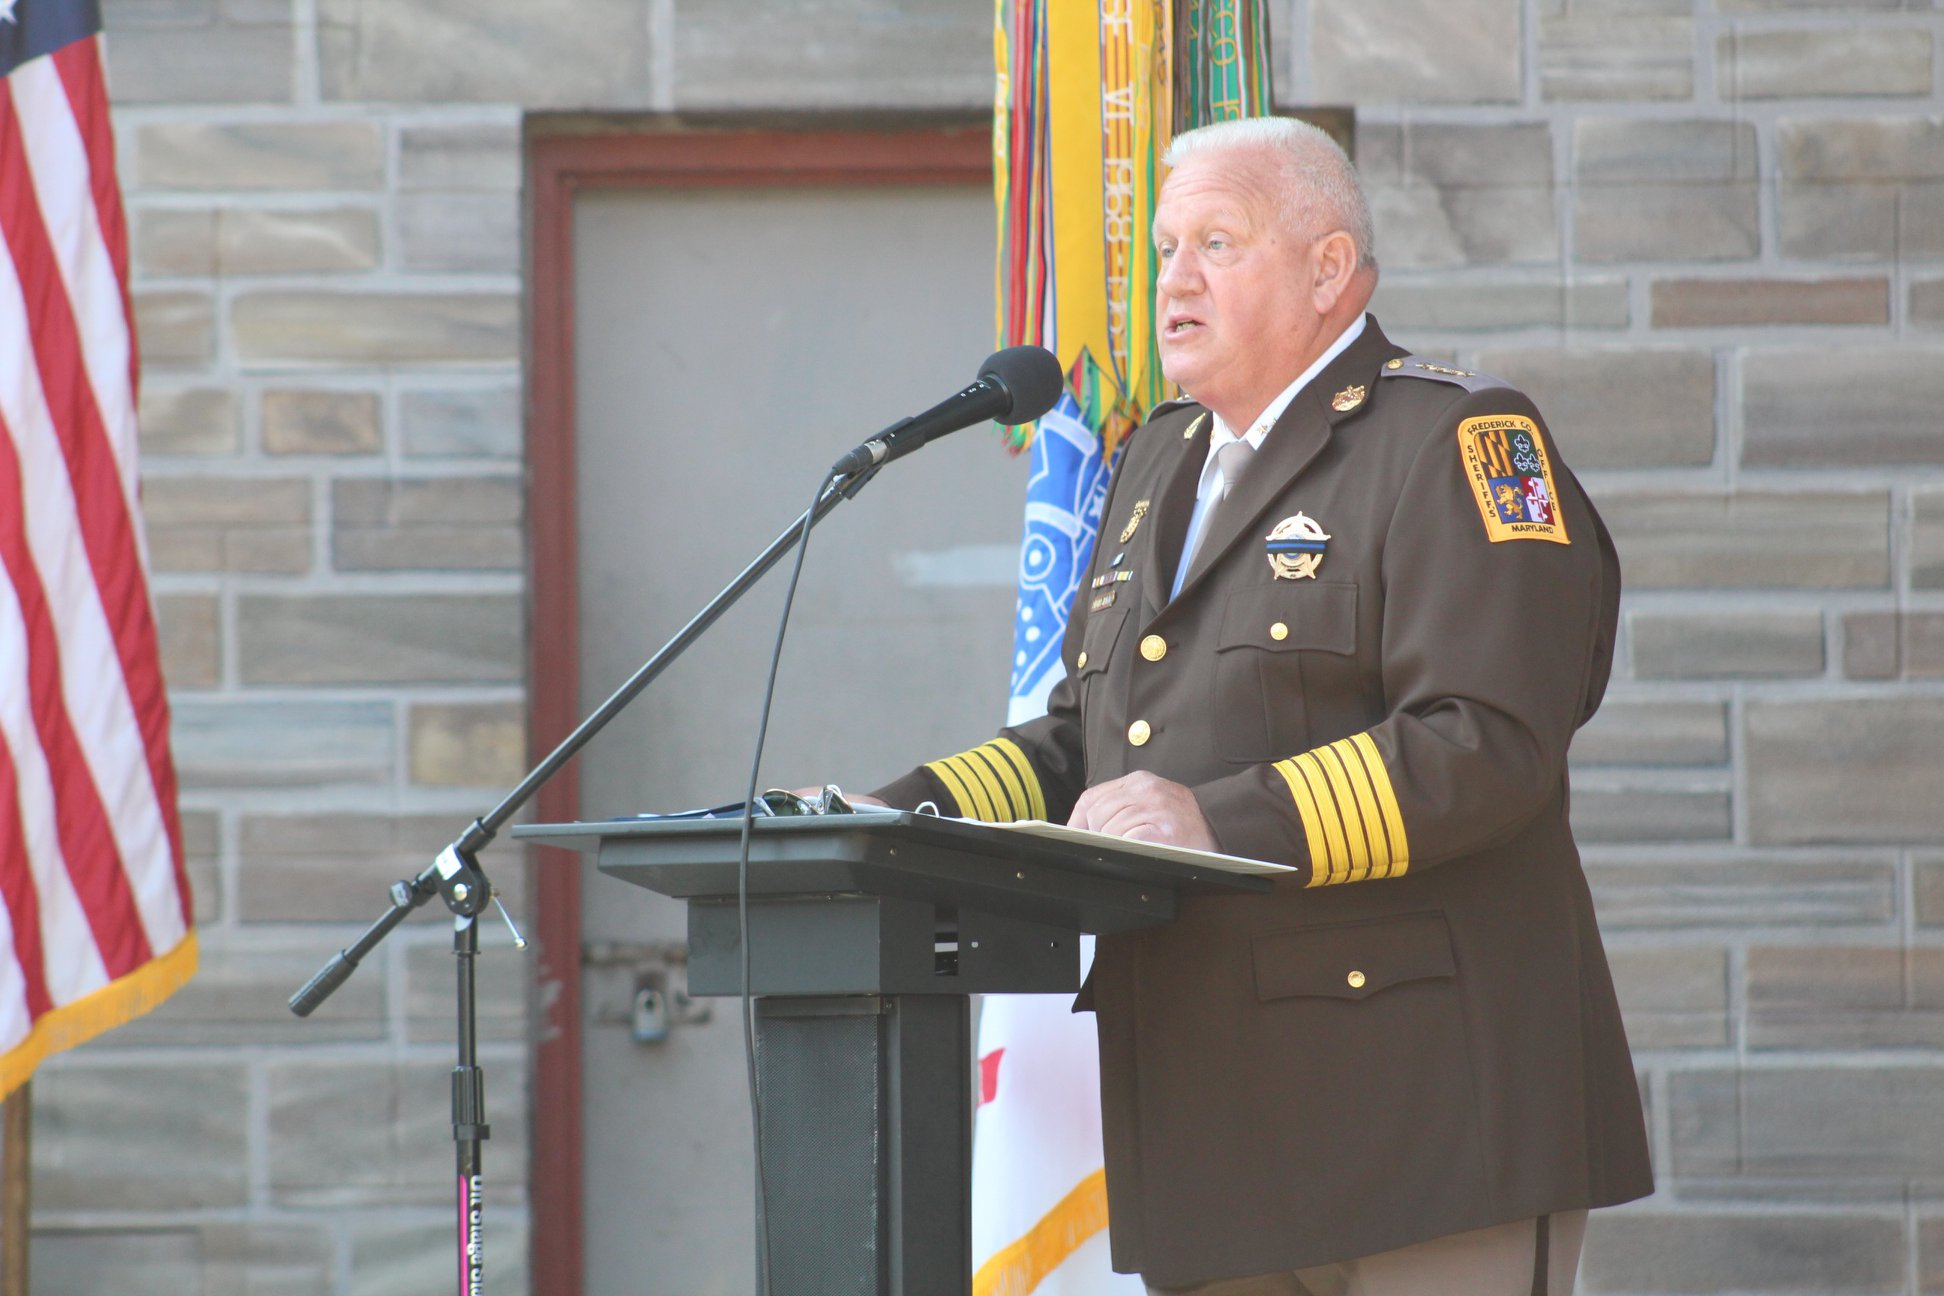 Frederick County Sheriff Defends Speech From 9/11 Remembrance Ceremony